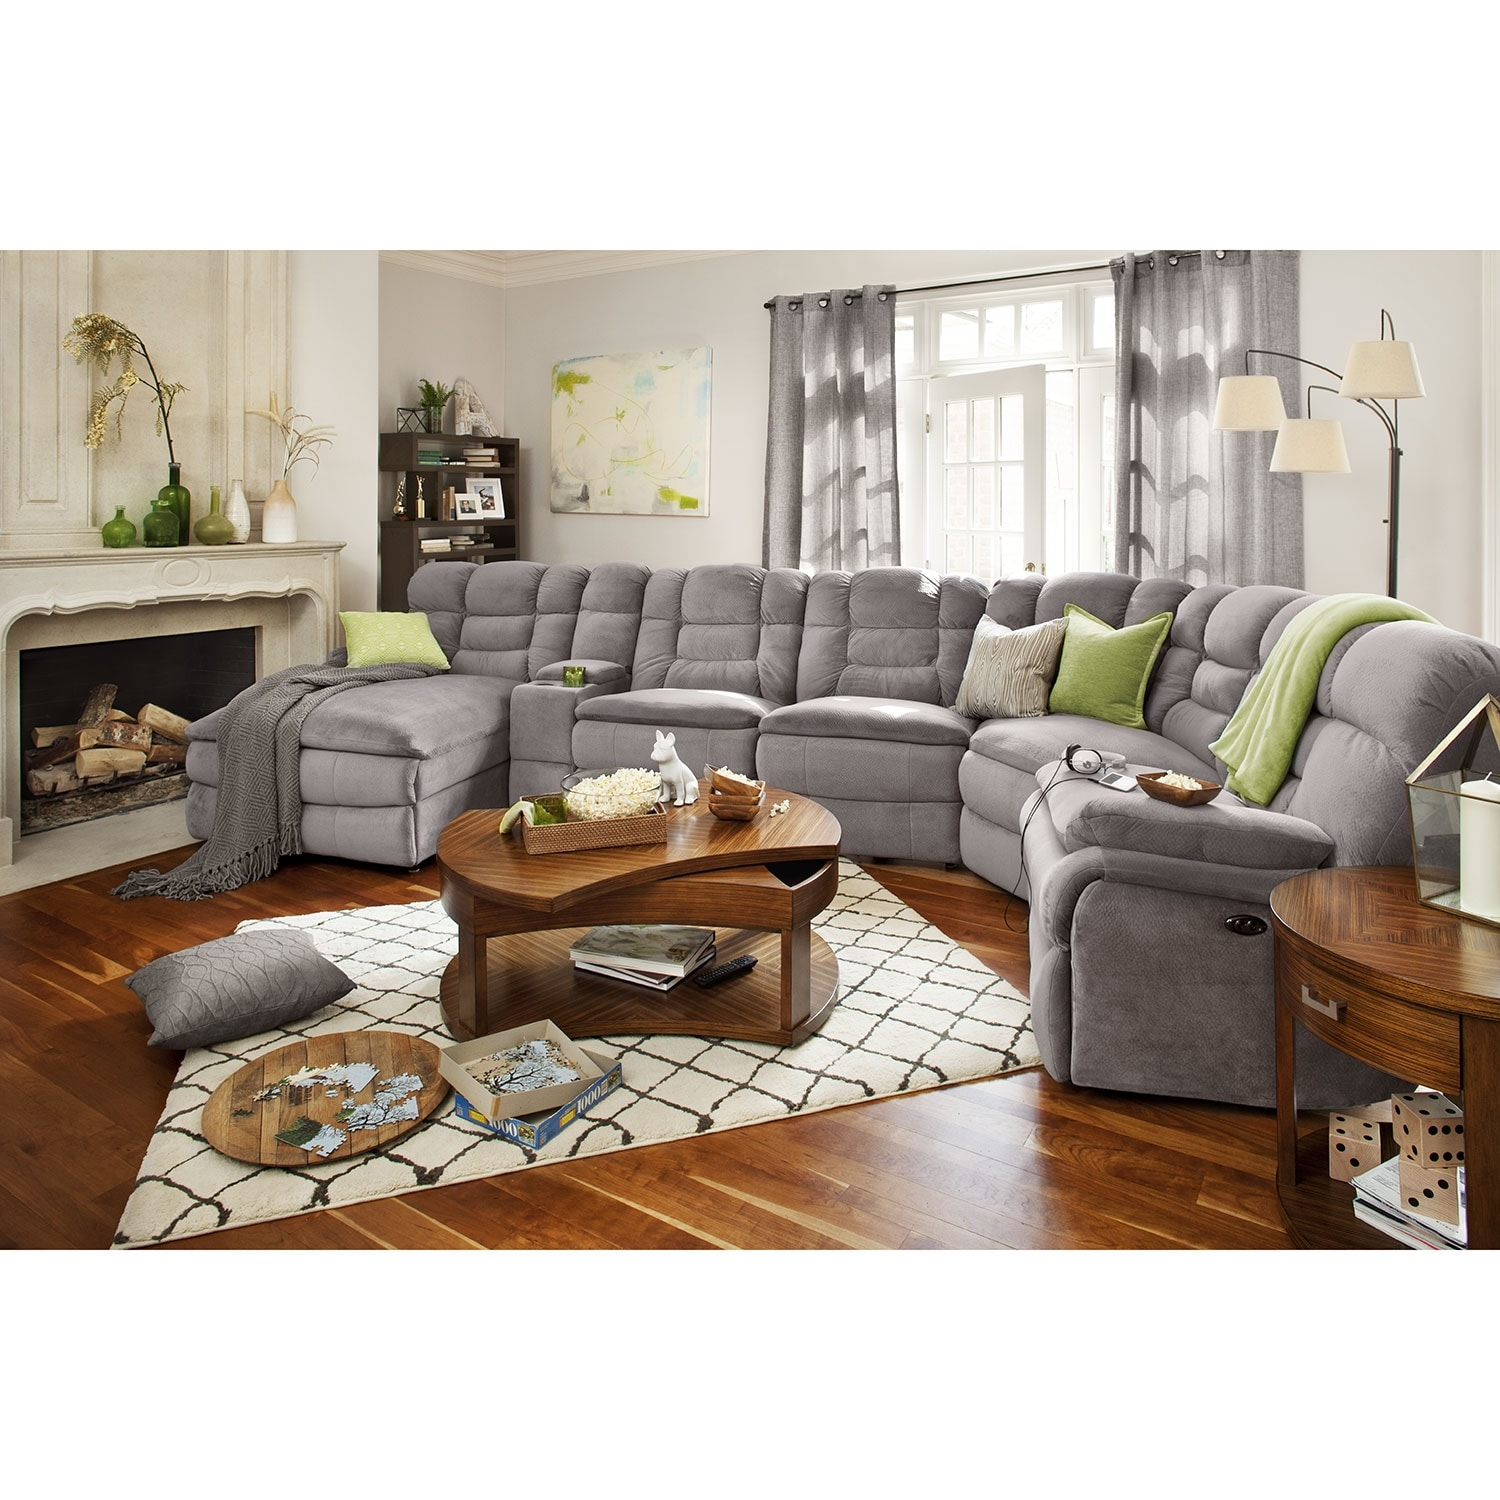 Big Softie 6 Piece Power Reclining Sectional with Left Facing